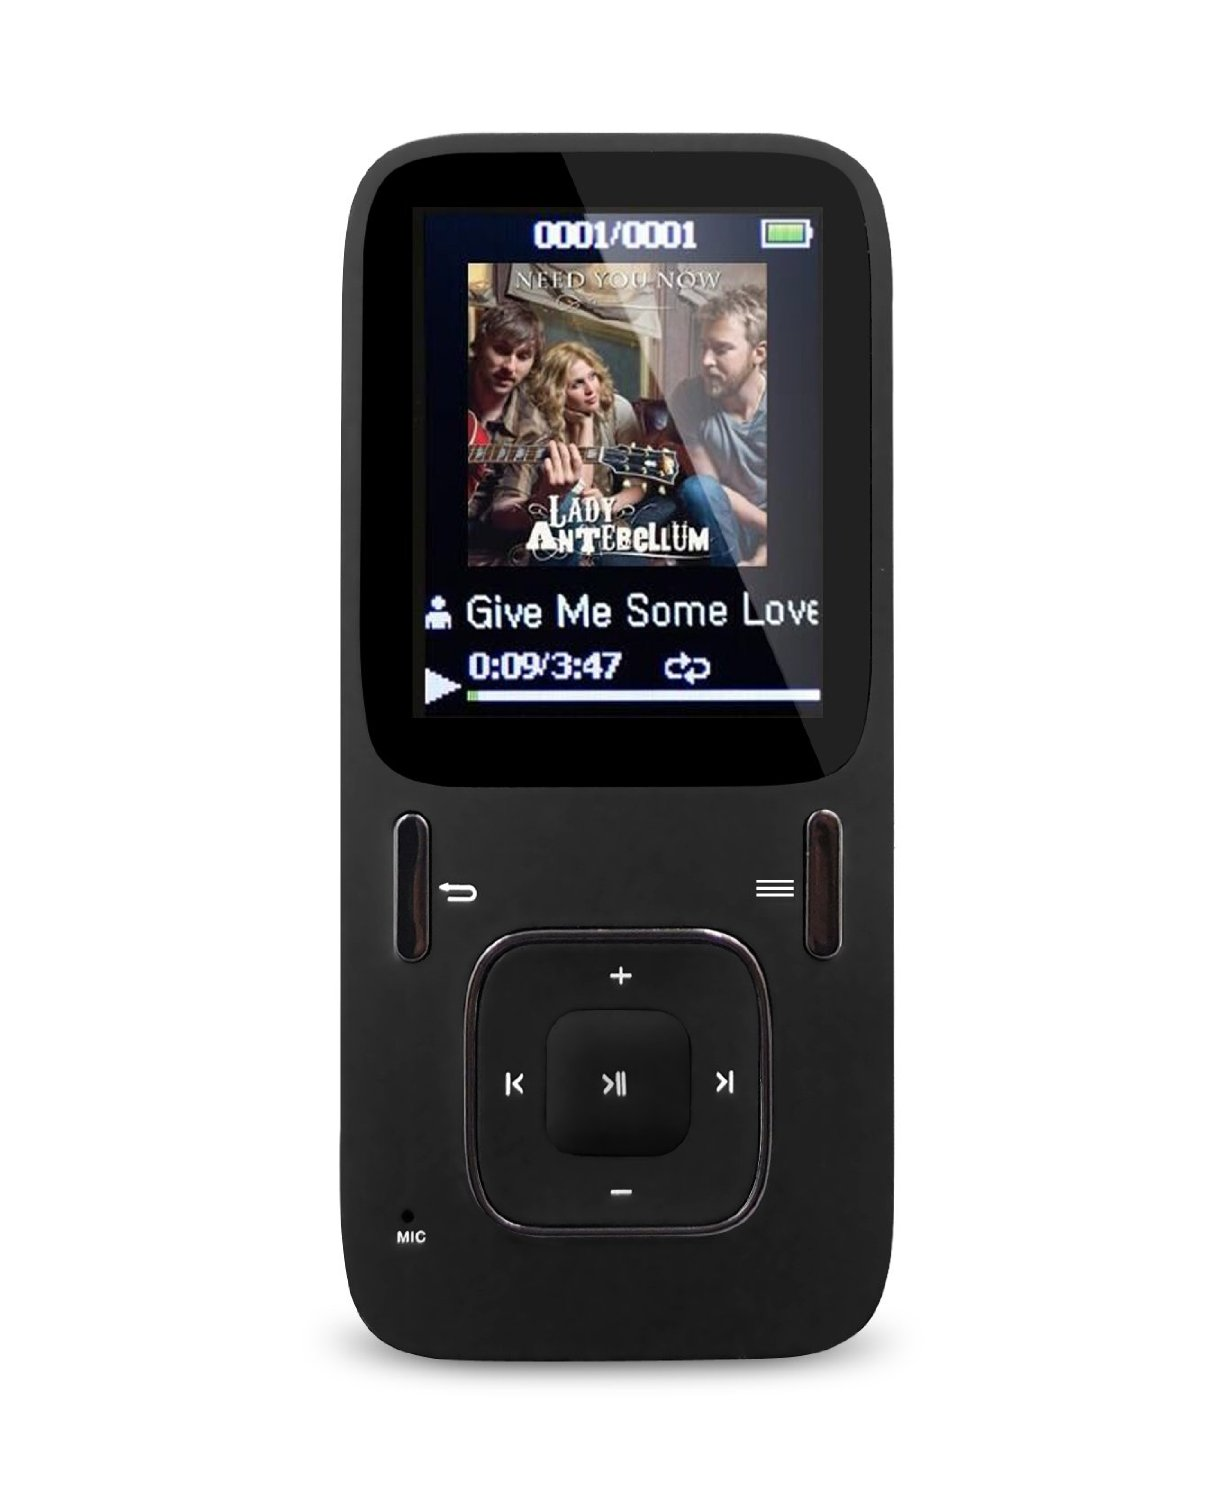 AGPtEK B03 Hi-Fi 8GB MP3 Music Player, Updated Version of A02 Mp3 Player, Supports up to 64GB Micro SD Card (Black)